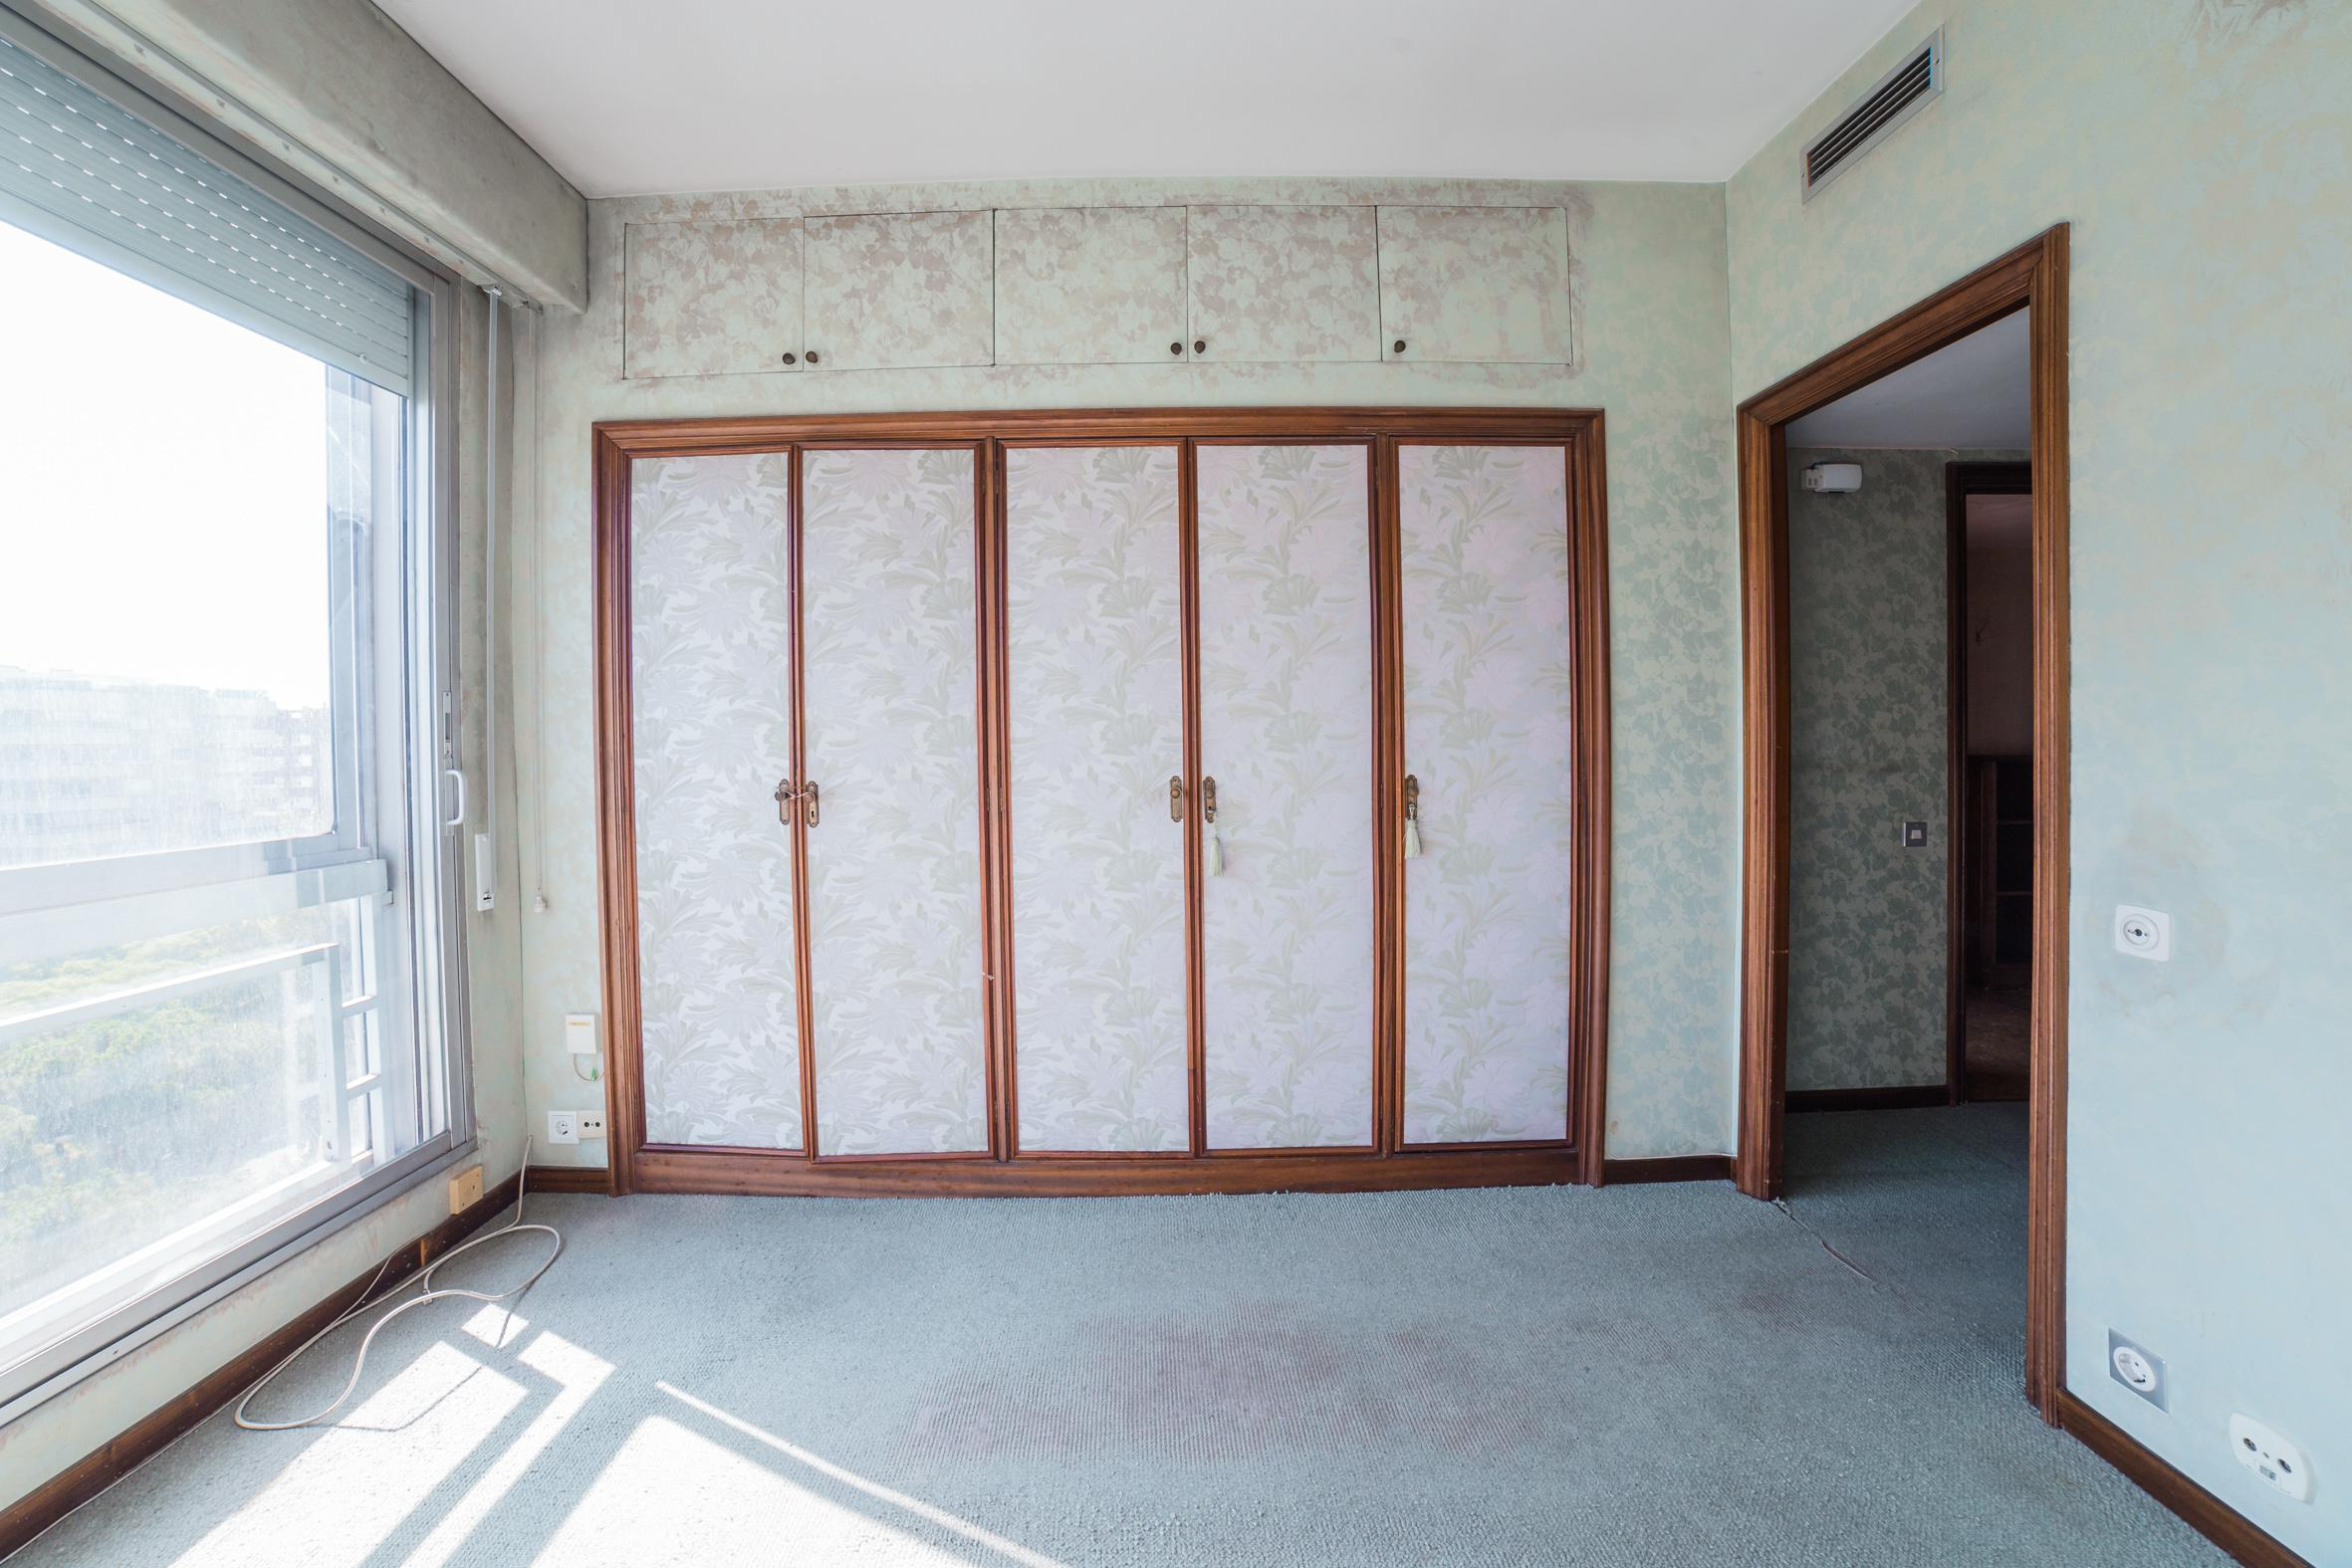 248988 Flat for sale in Les Corts, Les Corts 17